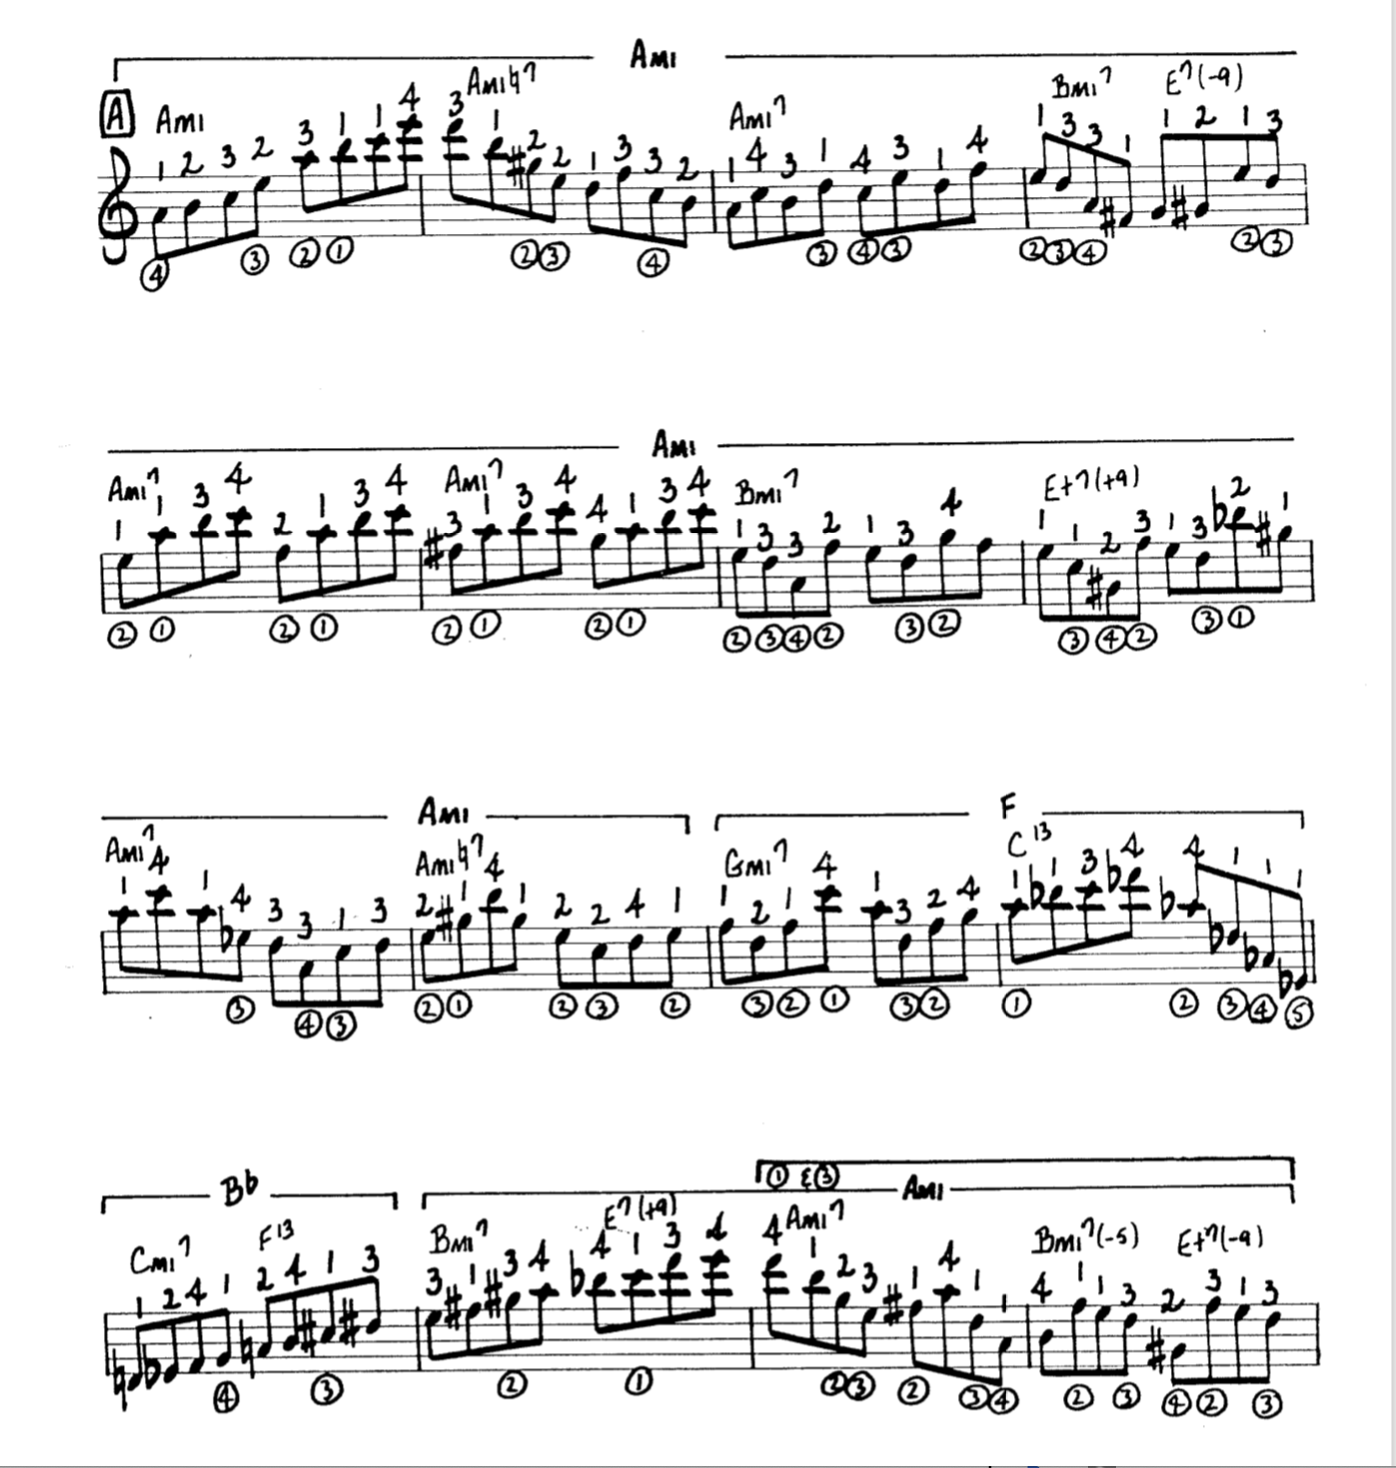 Howard Roberts Super Chops: study group for a tune based practice routine-screen-shot-2021-01-12-7-14-05-pm-png